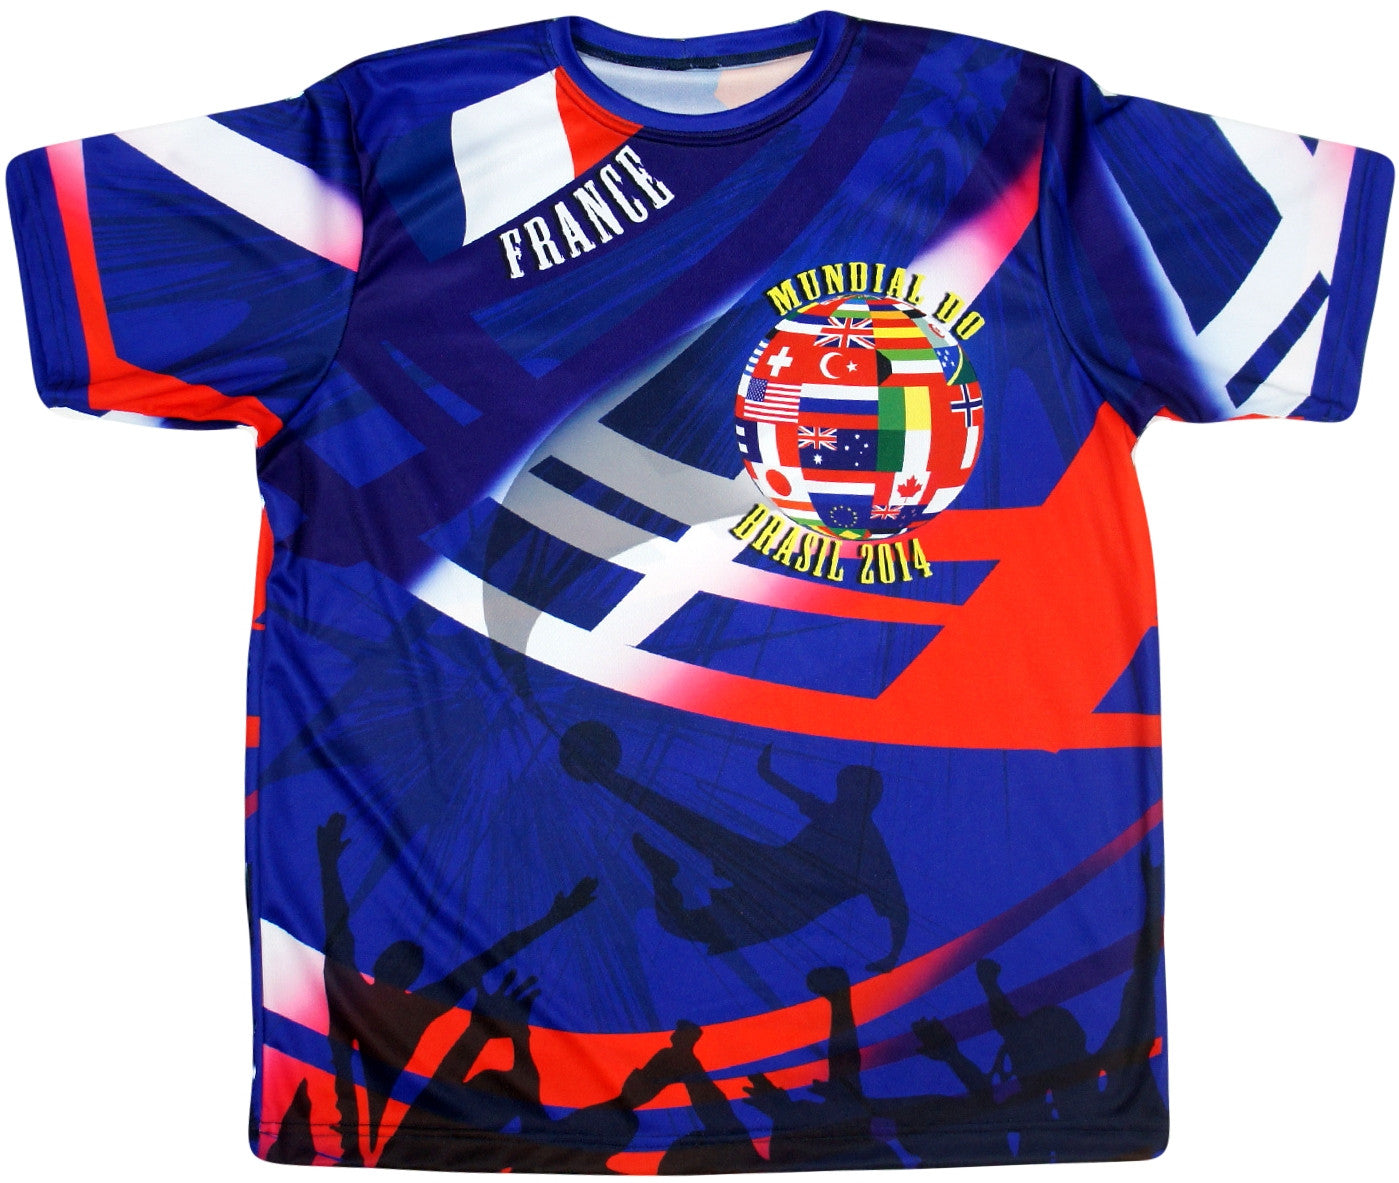 France 2014 World Cup Jersey - And Still